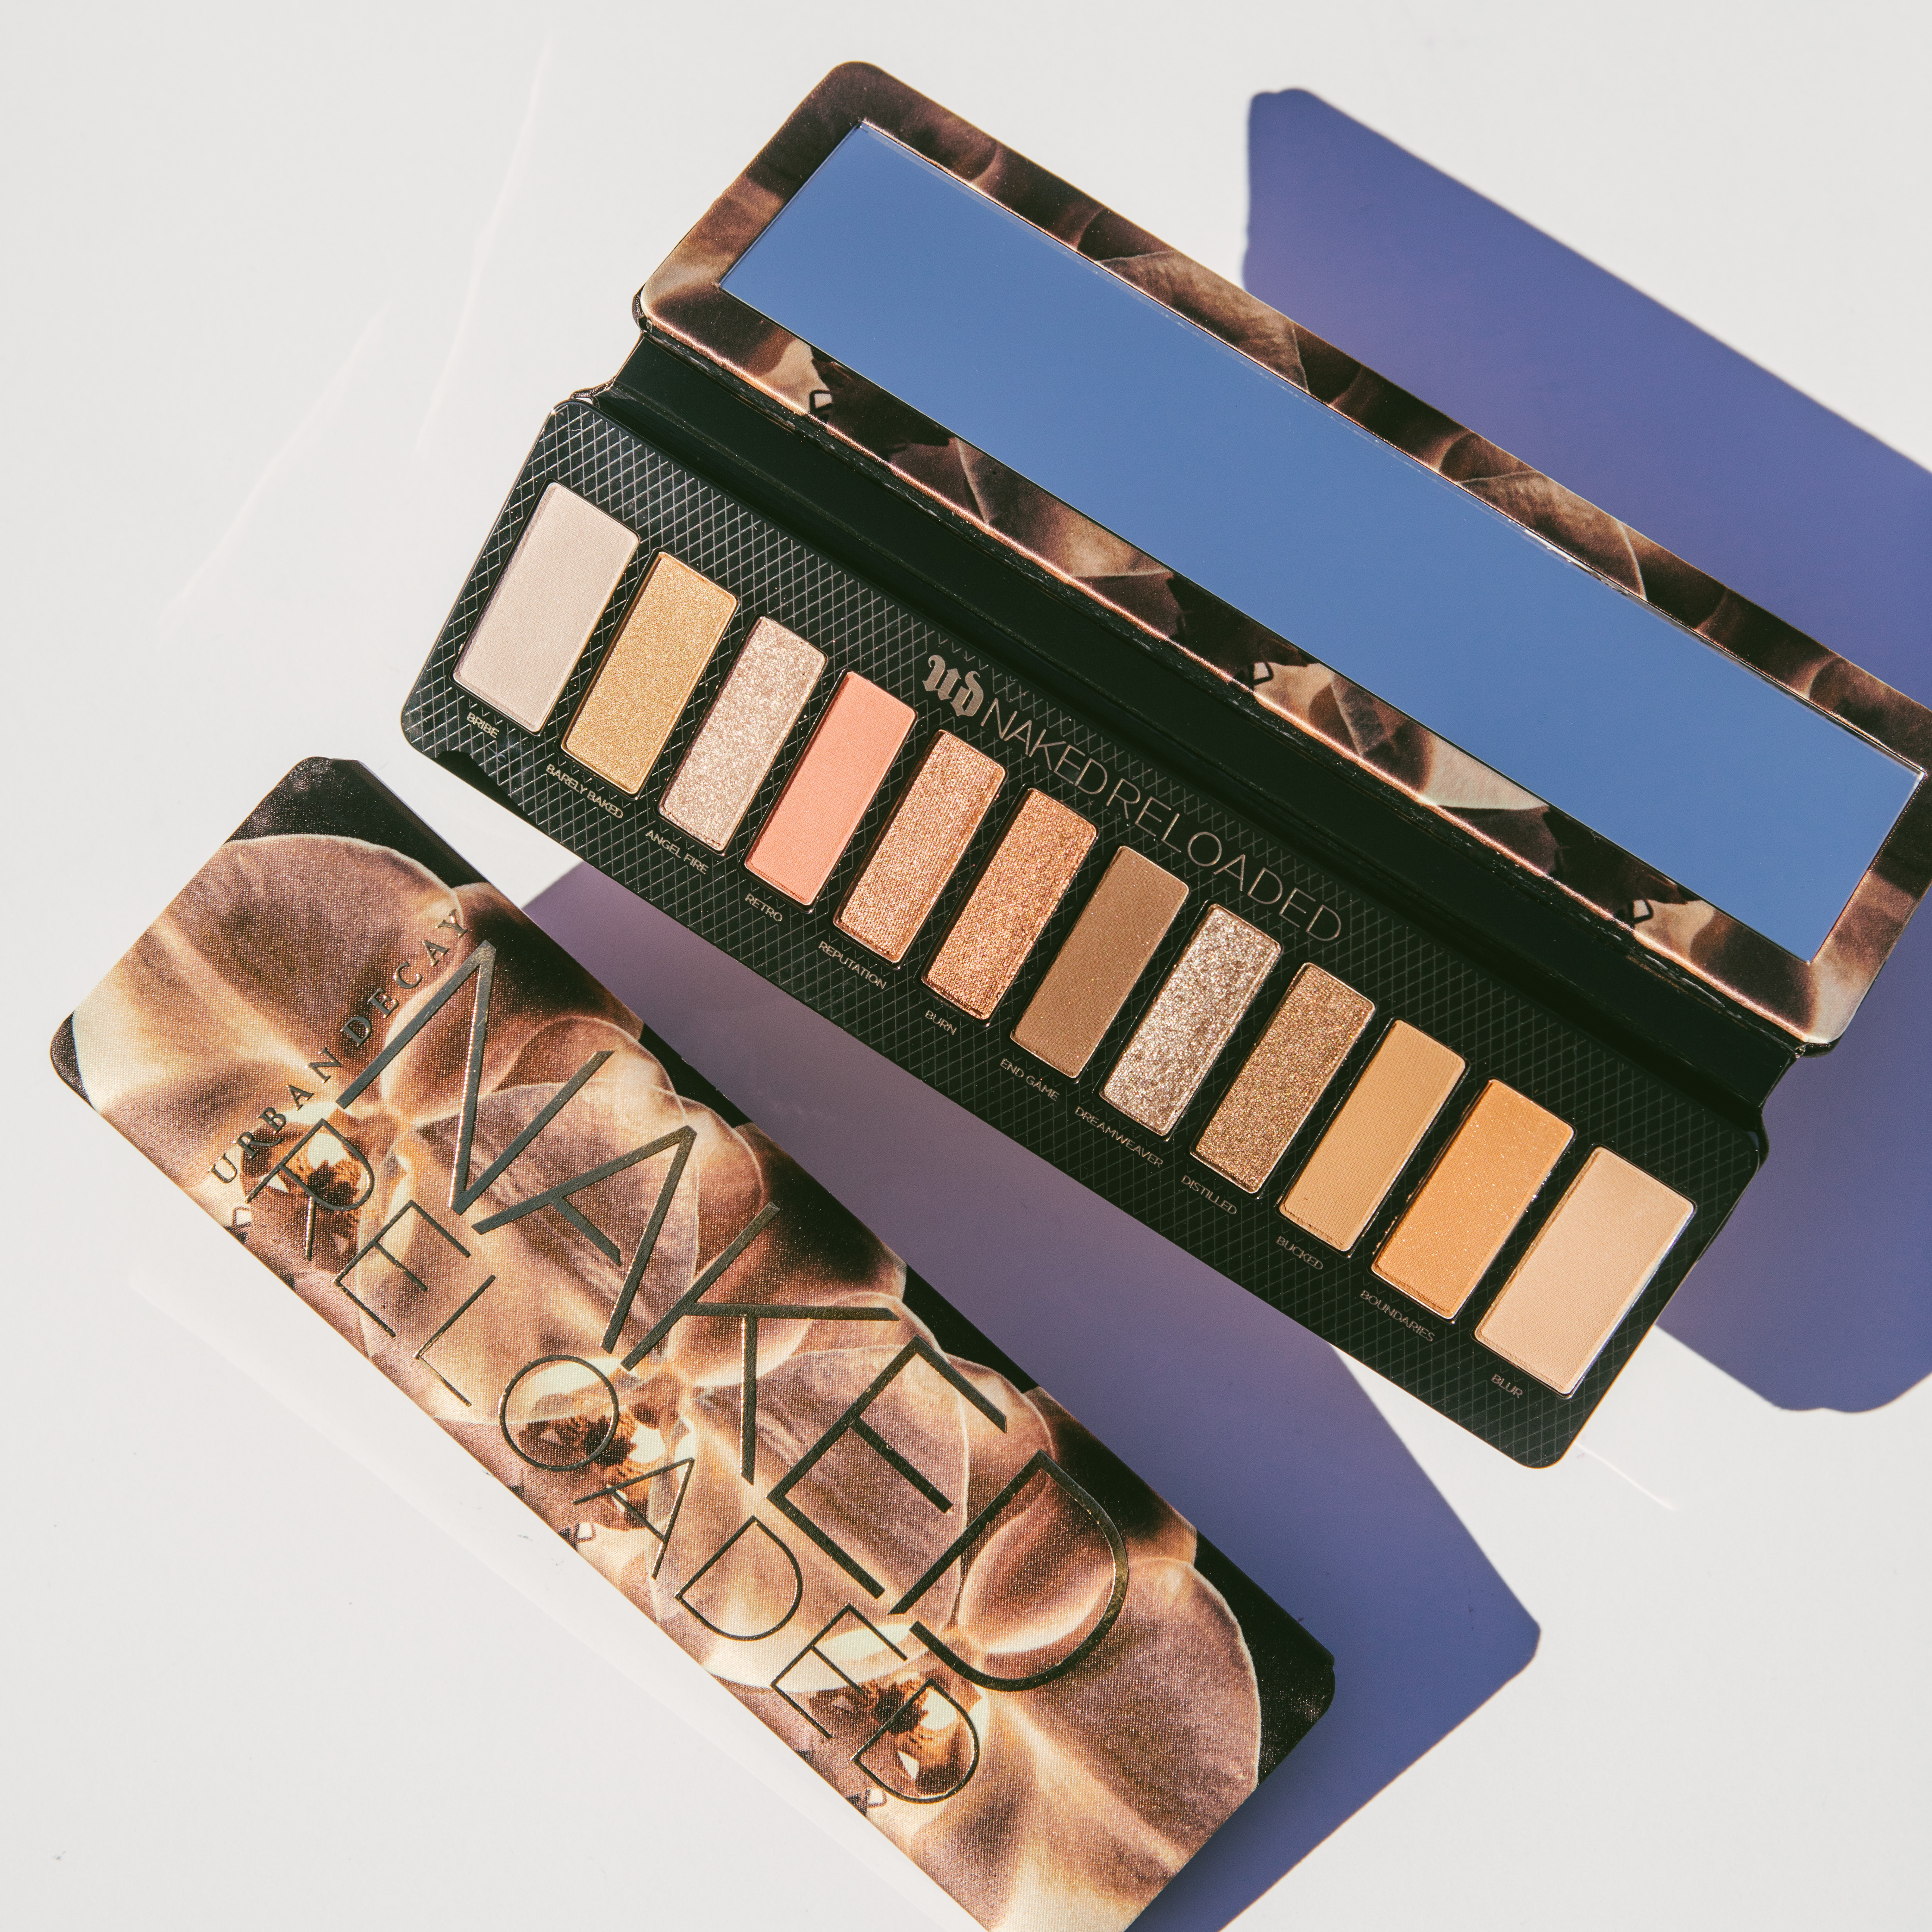 Naked Reloaded di Urban Decay